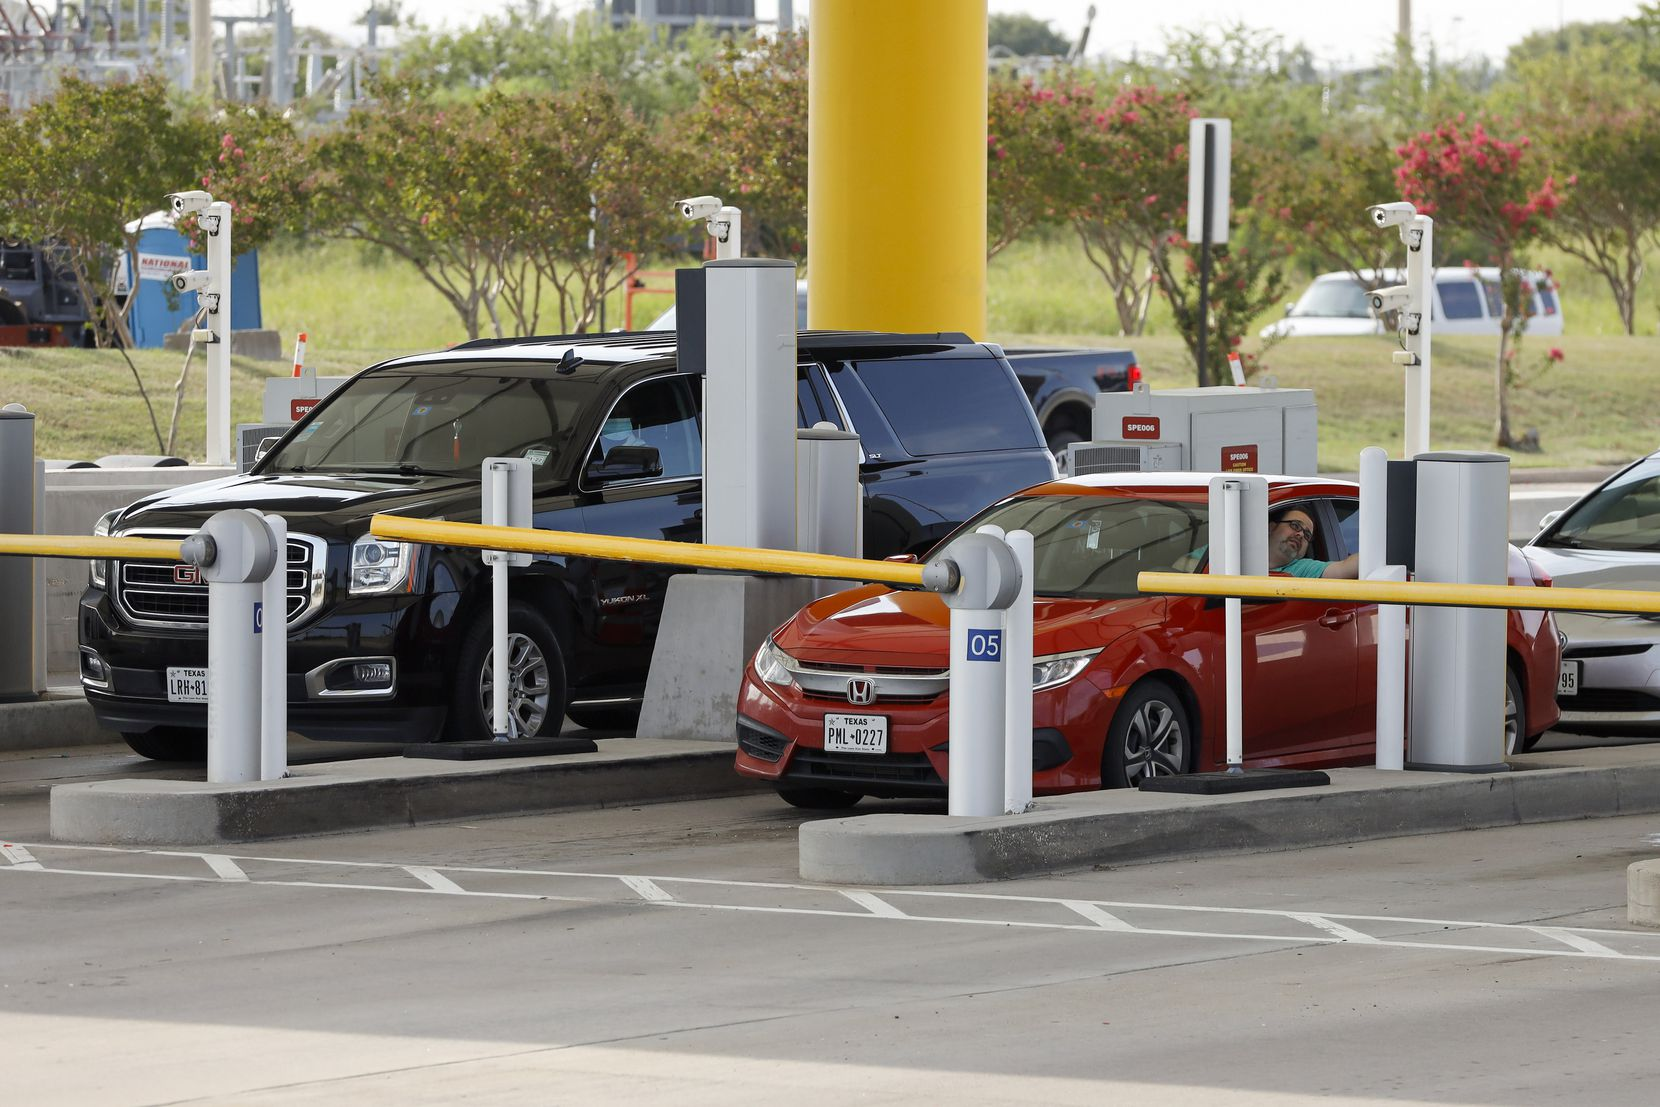 Drivers collect tickets at Dallas Fort Worth International Airport's south entrance on Friday, Sept. 3, 2021.